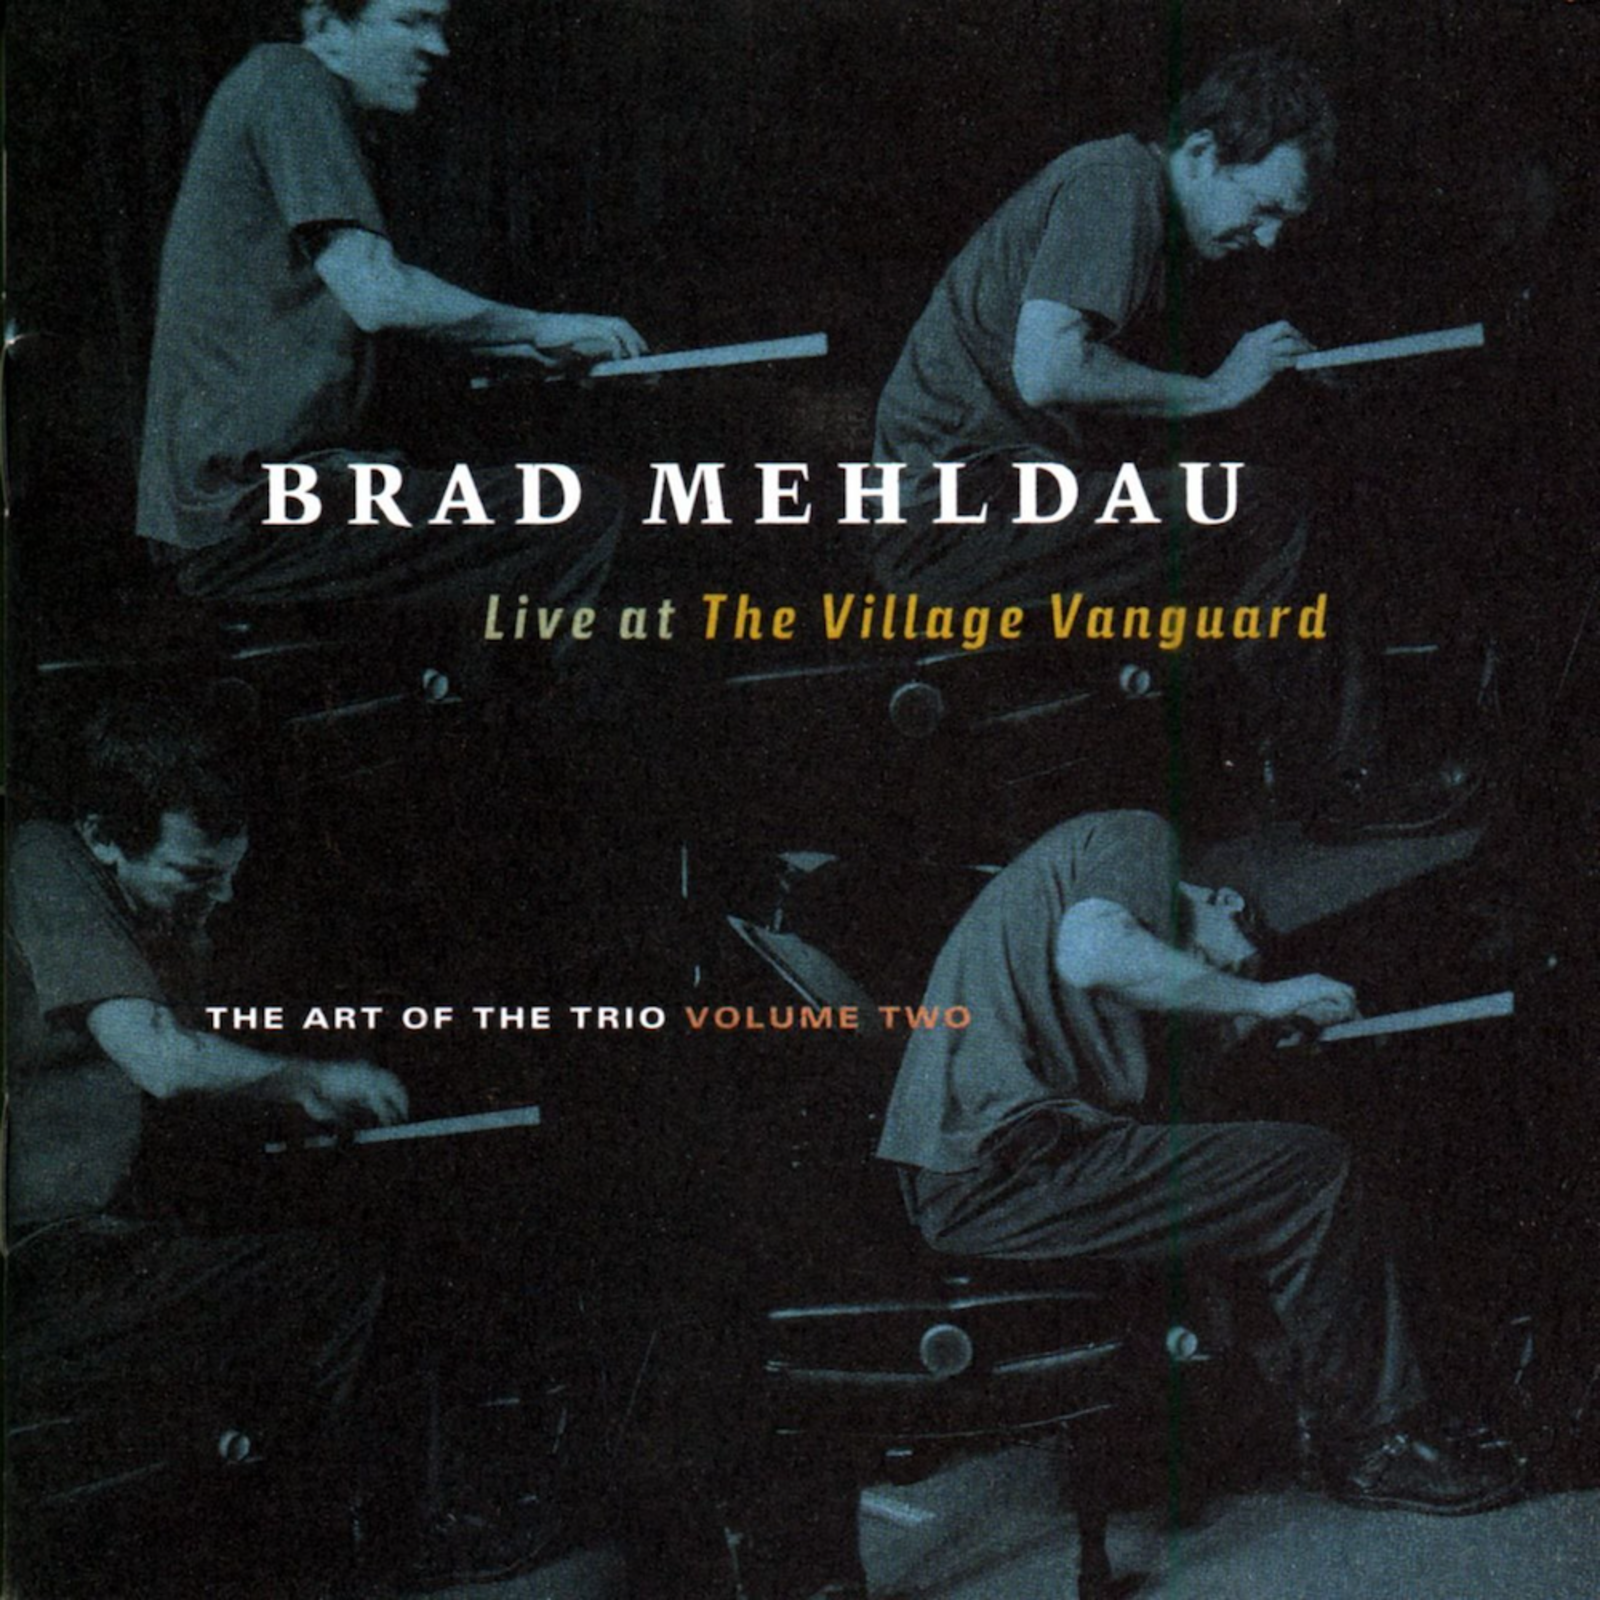 The Art of the Trio Volume 2 by Brad Mehldau